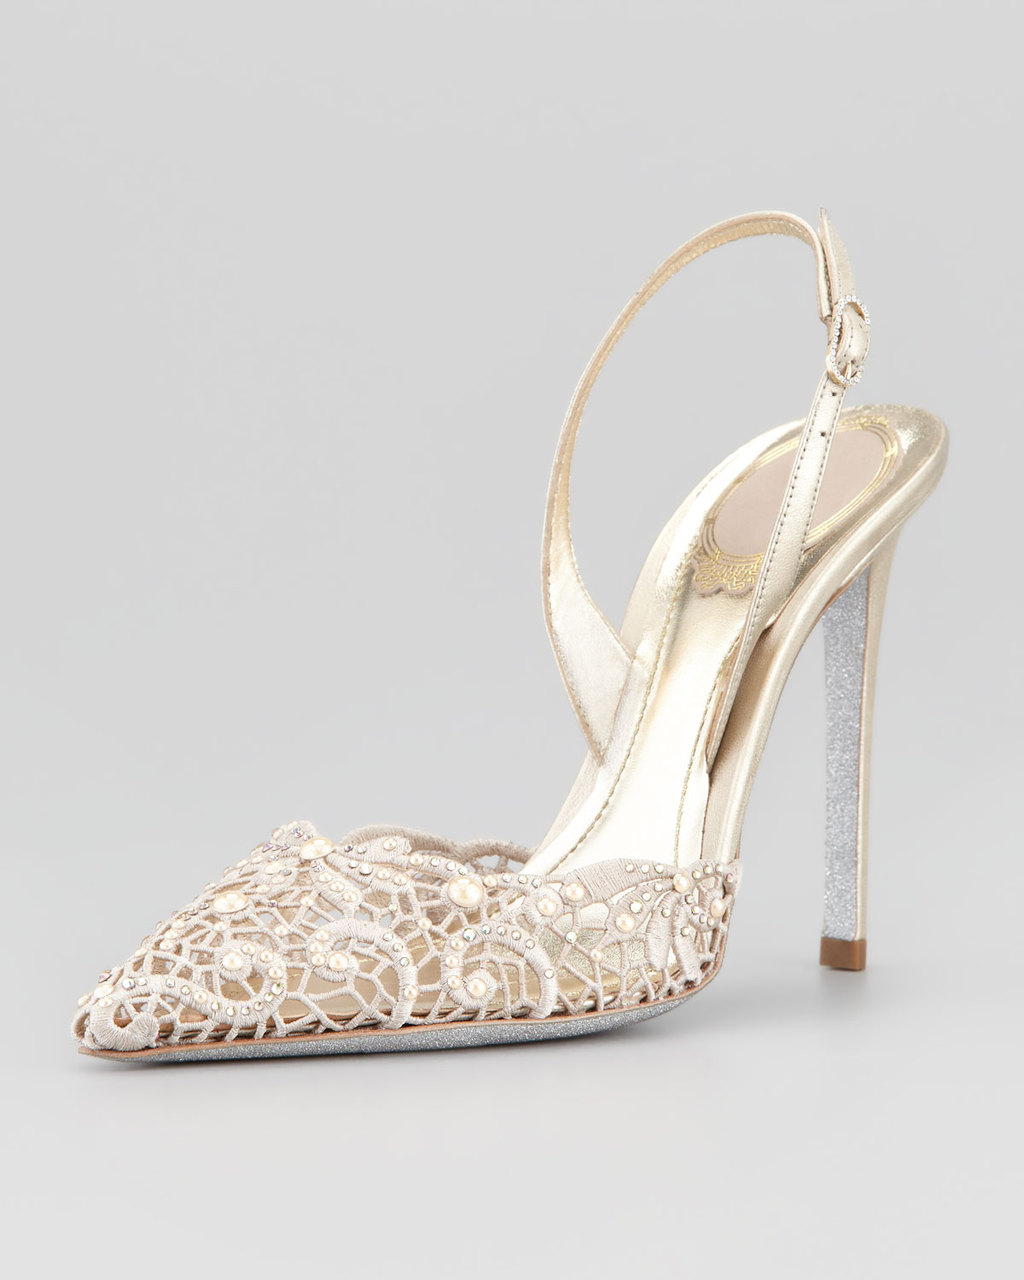 Lace-crochet-wedding-heels-with-silver-and-gold-accents.full